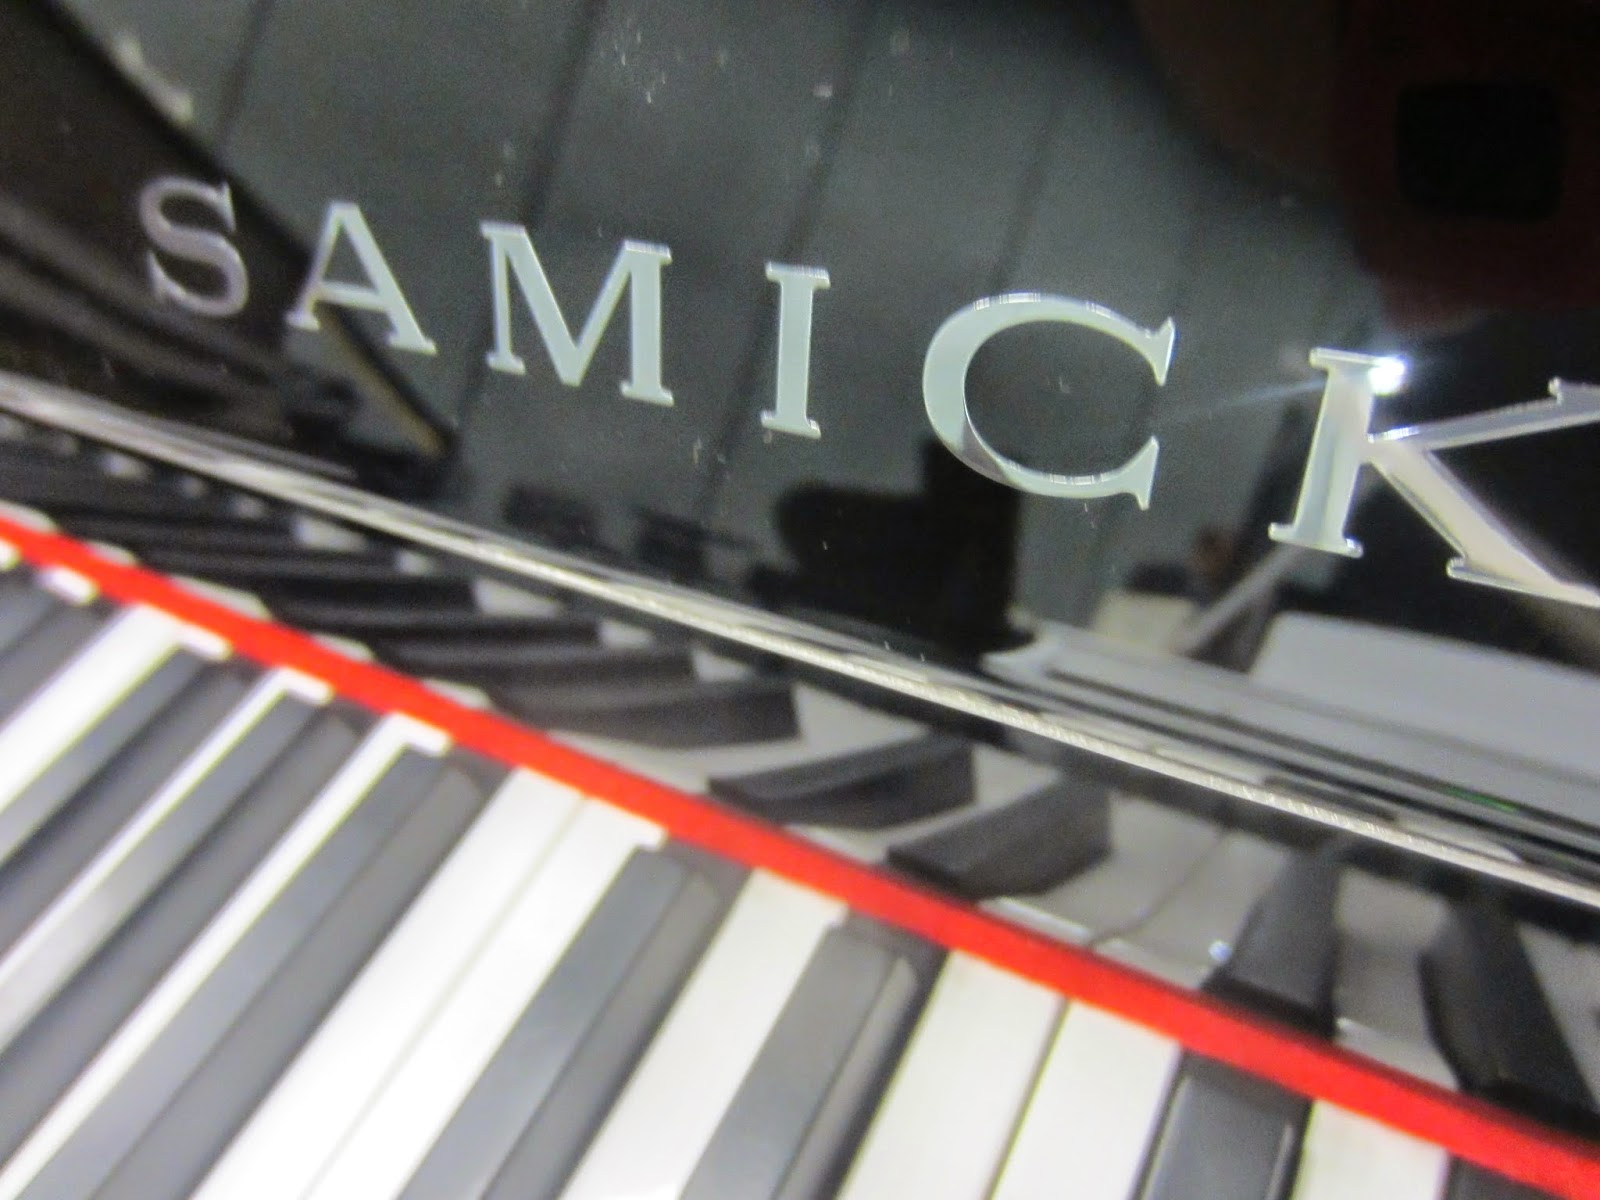 Samick Ebony 3 digital piano